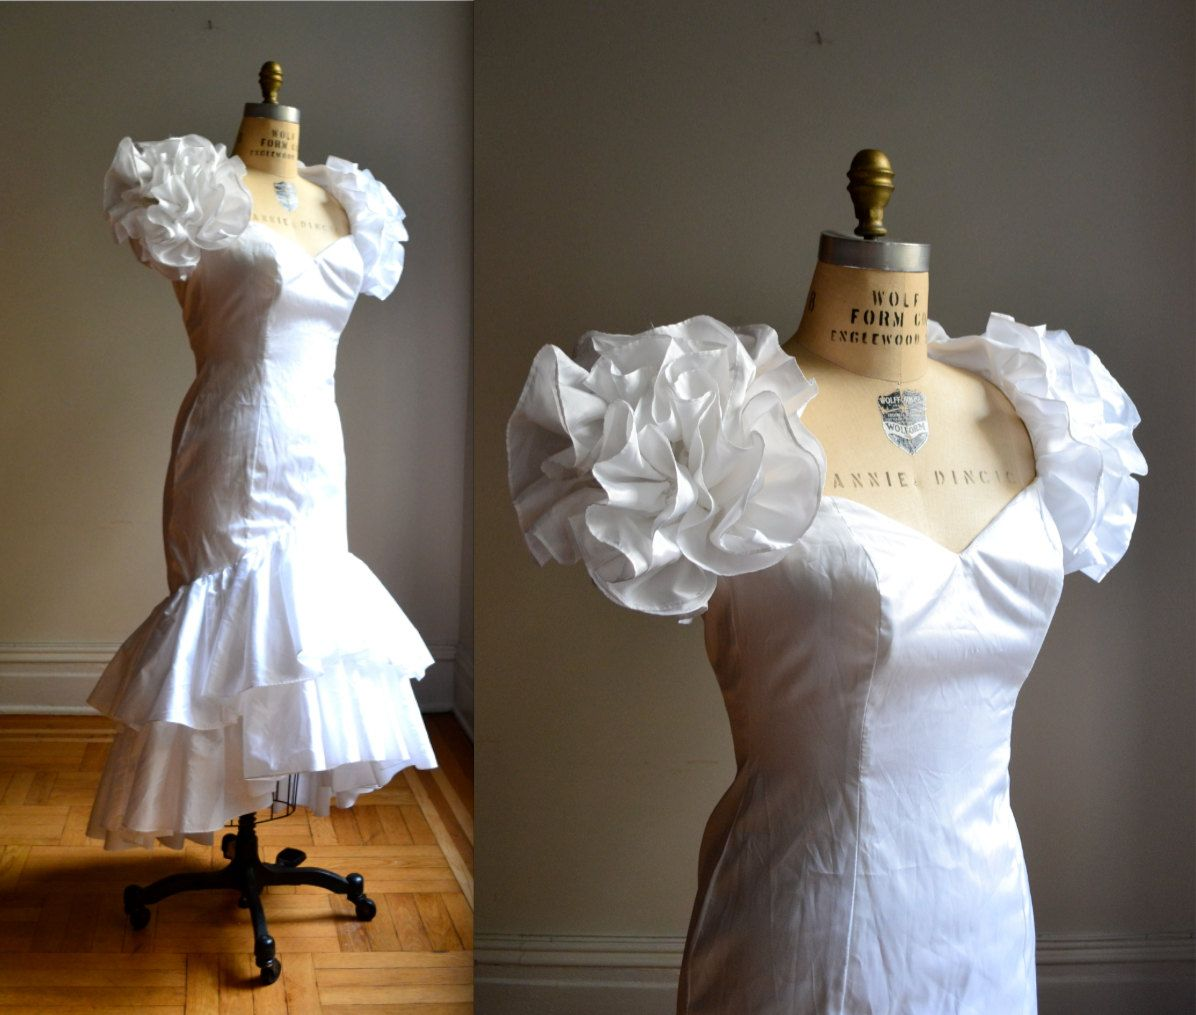 Vintage Wedding Dresses 80s: Kate's Wedding Dress White 80s Prom Dress With Puff